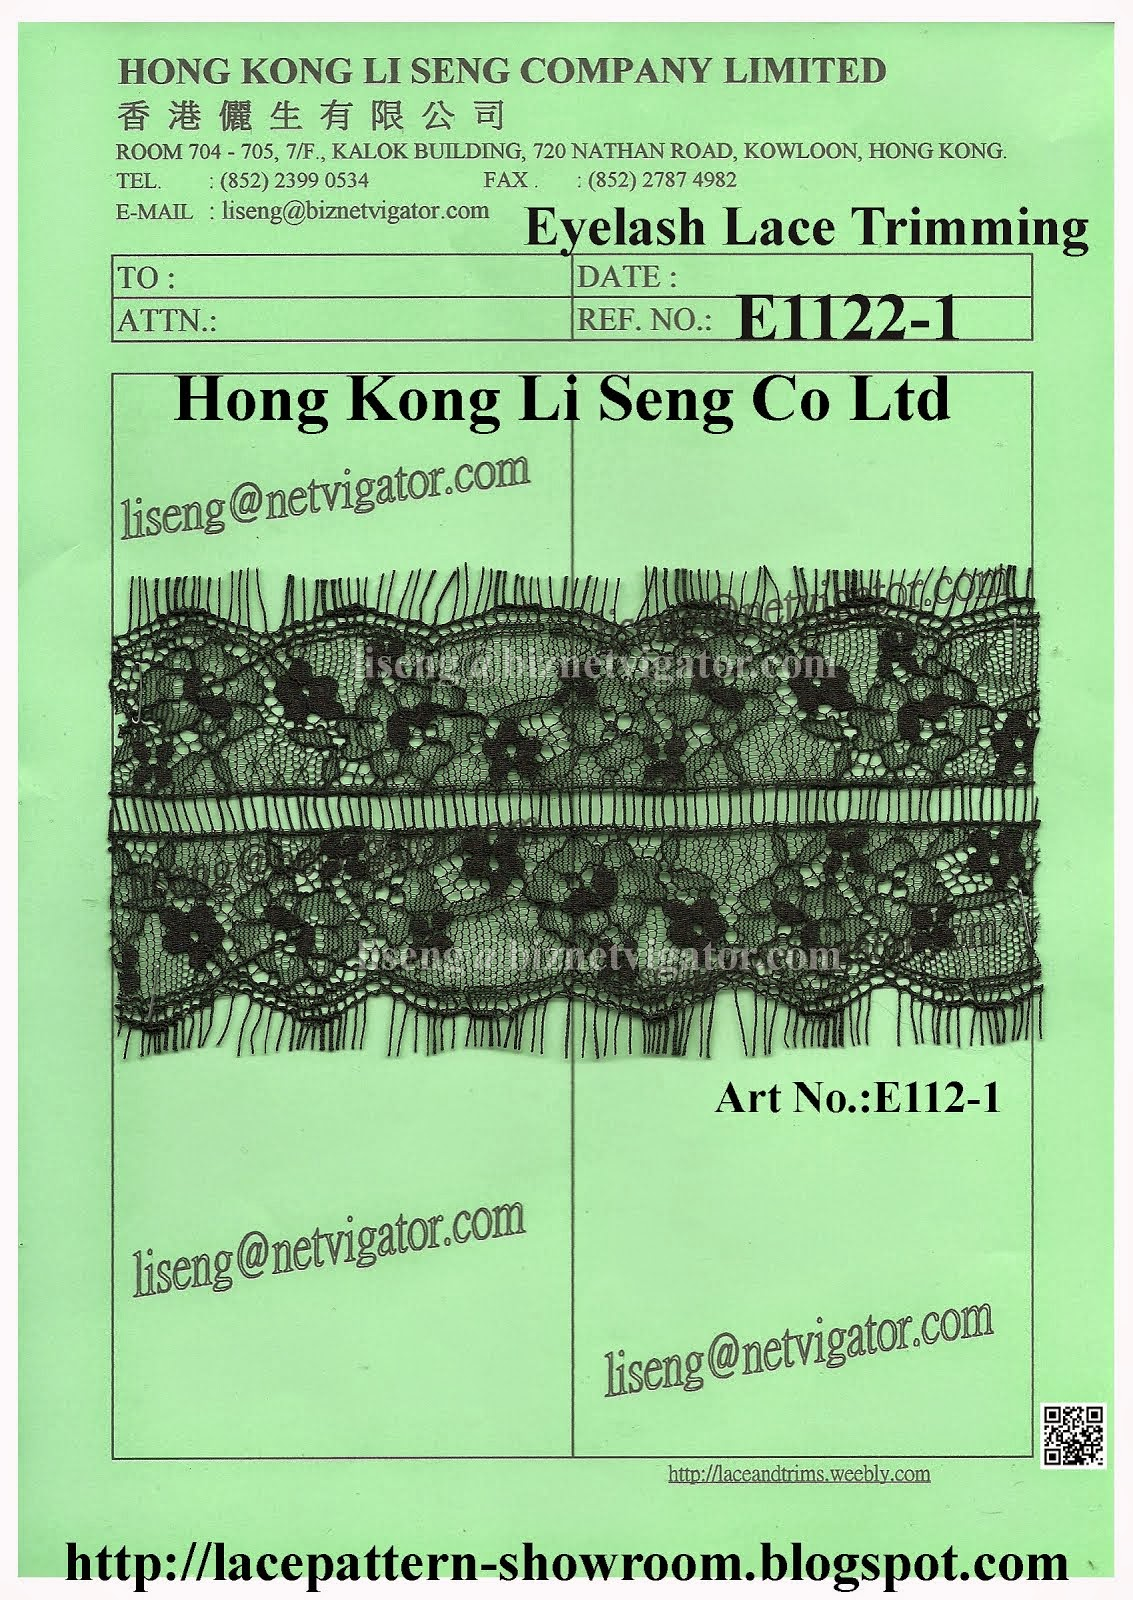 Eyelash Lace Trimming Manufacturer Wholesale and Supplier - Hong Kong Li Seng Co Ltd